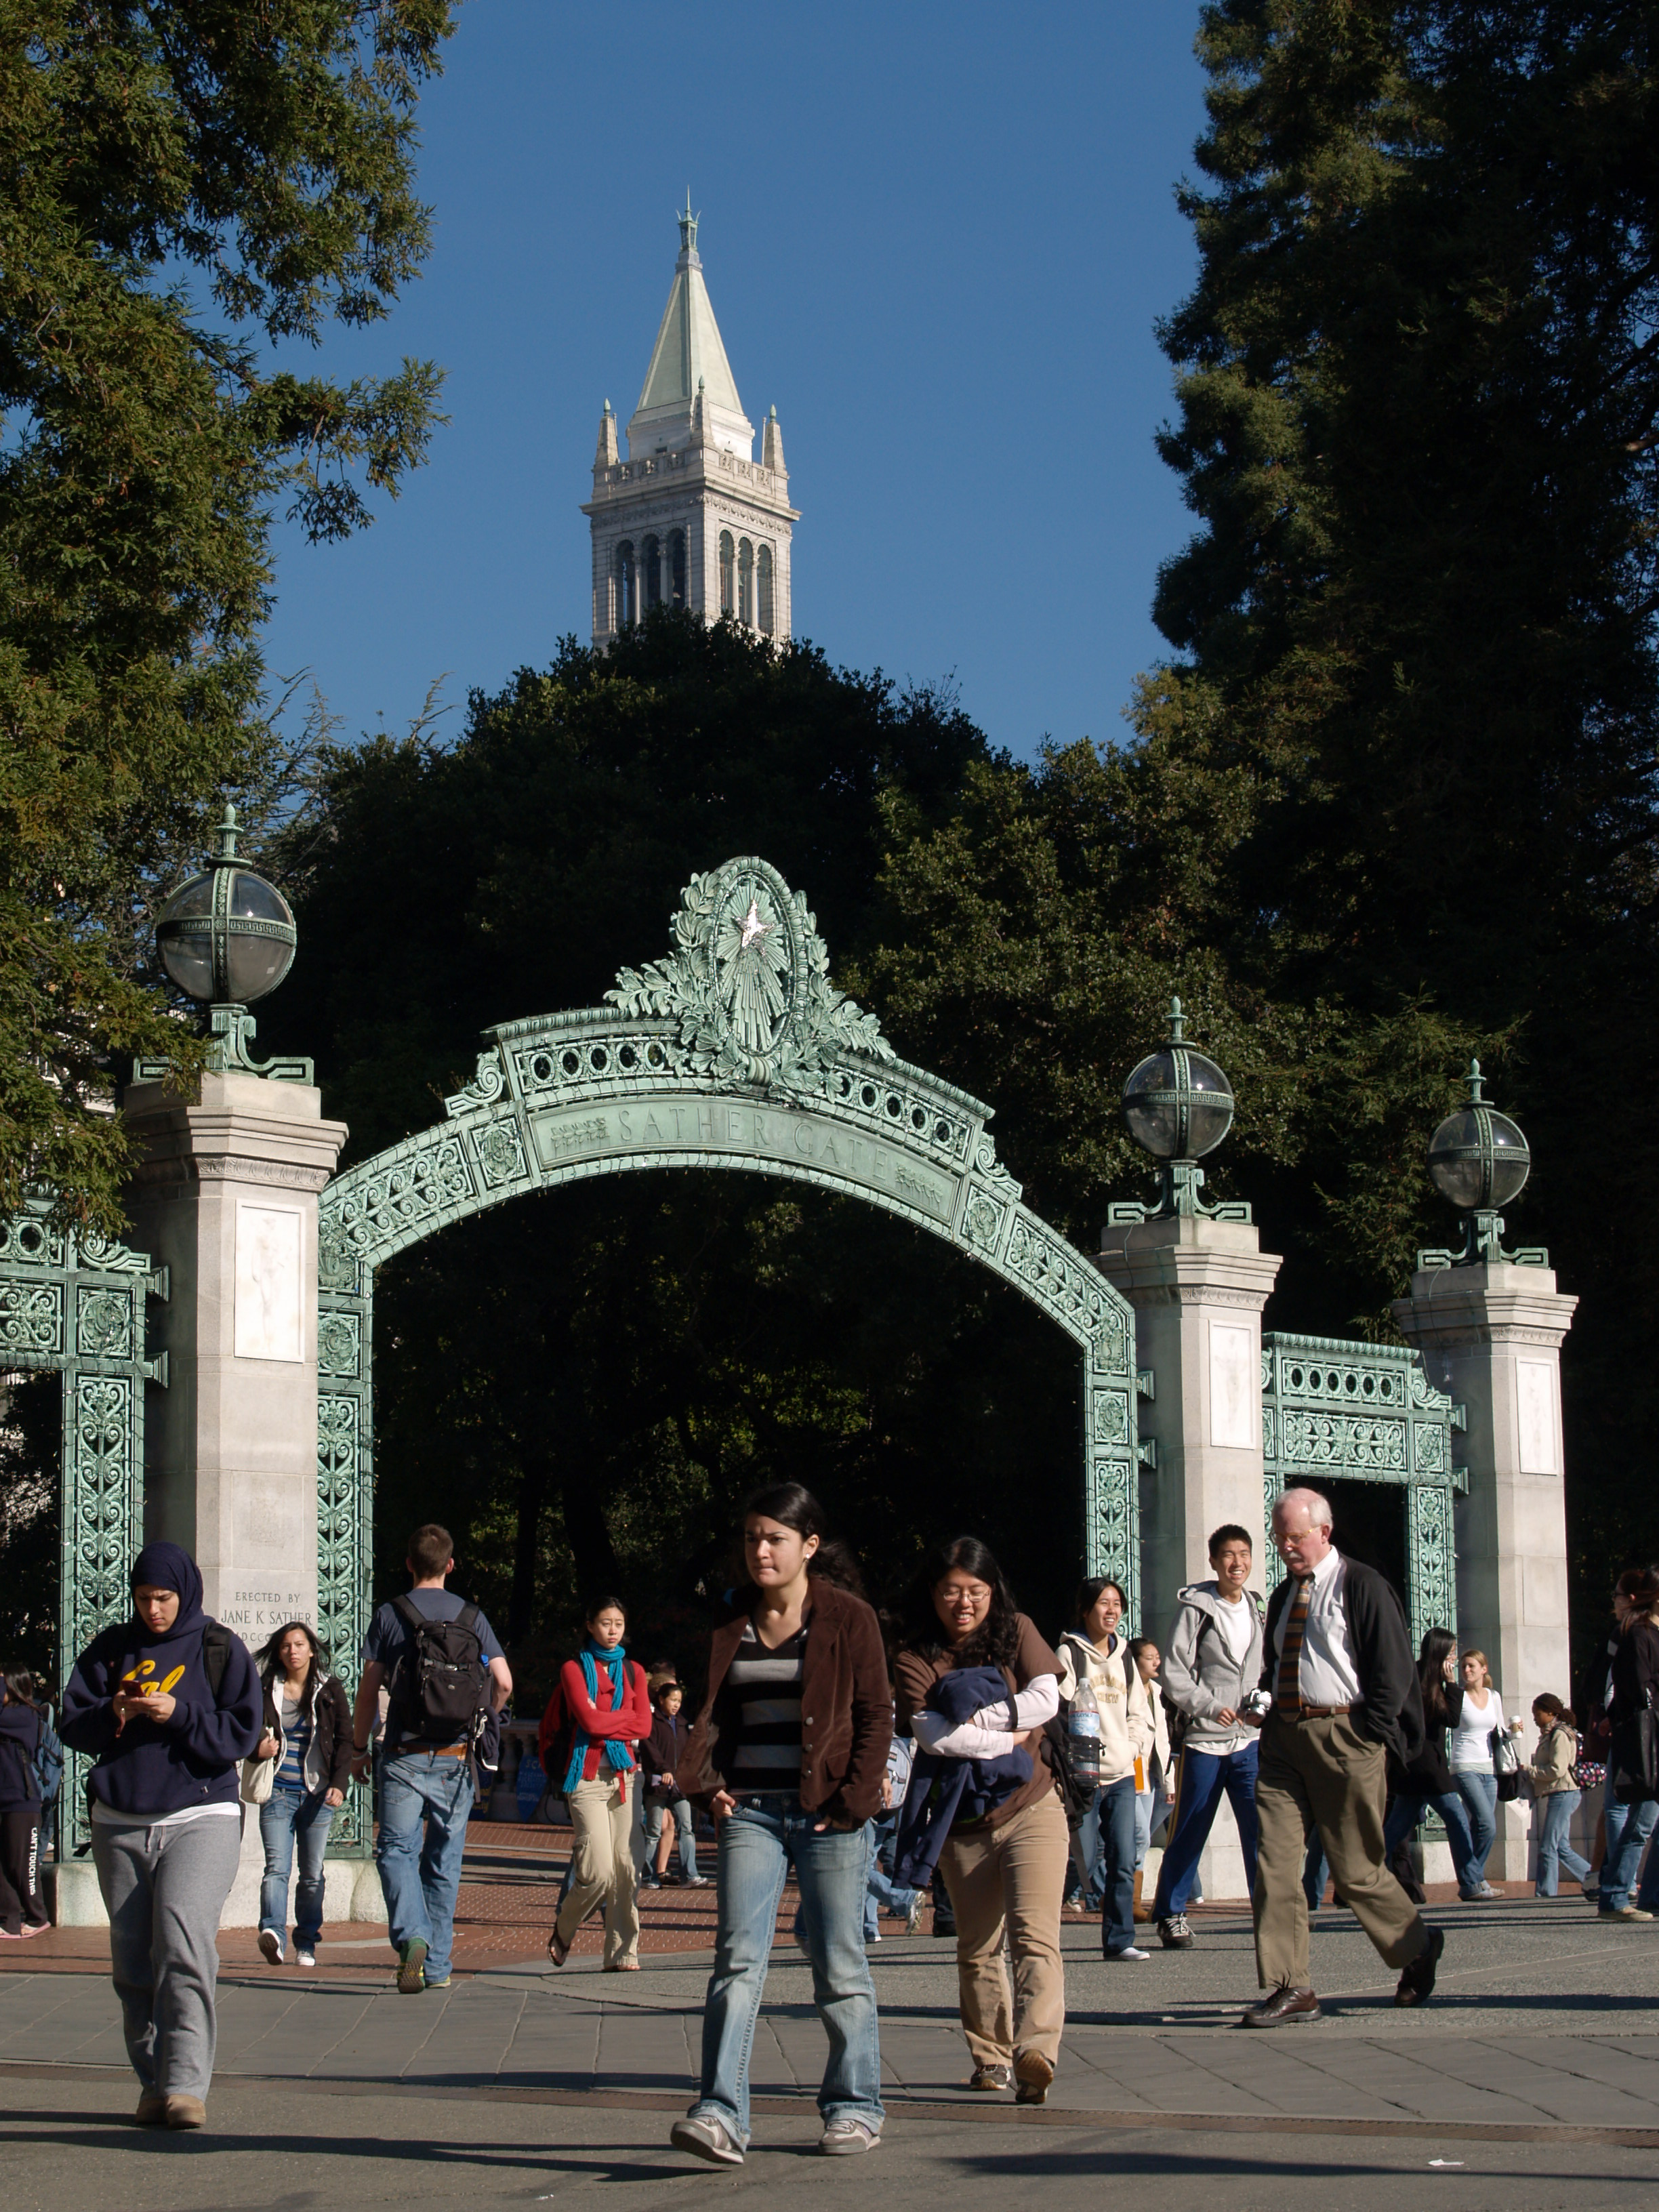 How to apply to UC Berkeley?please help?